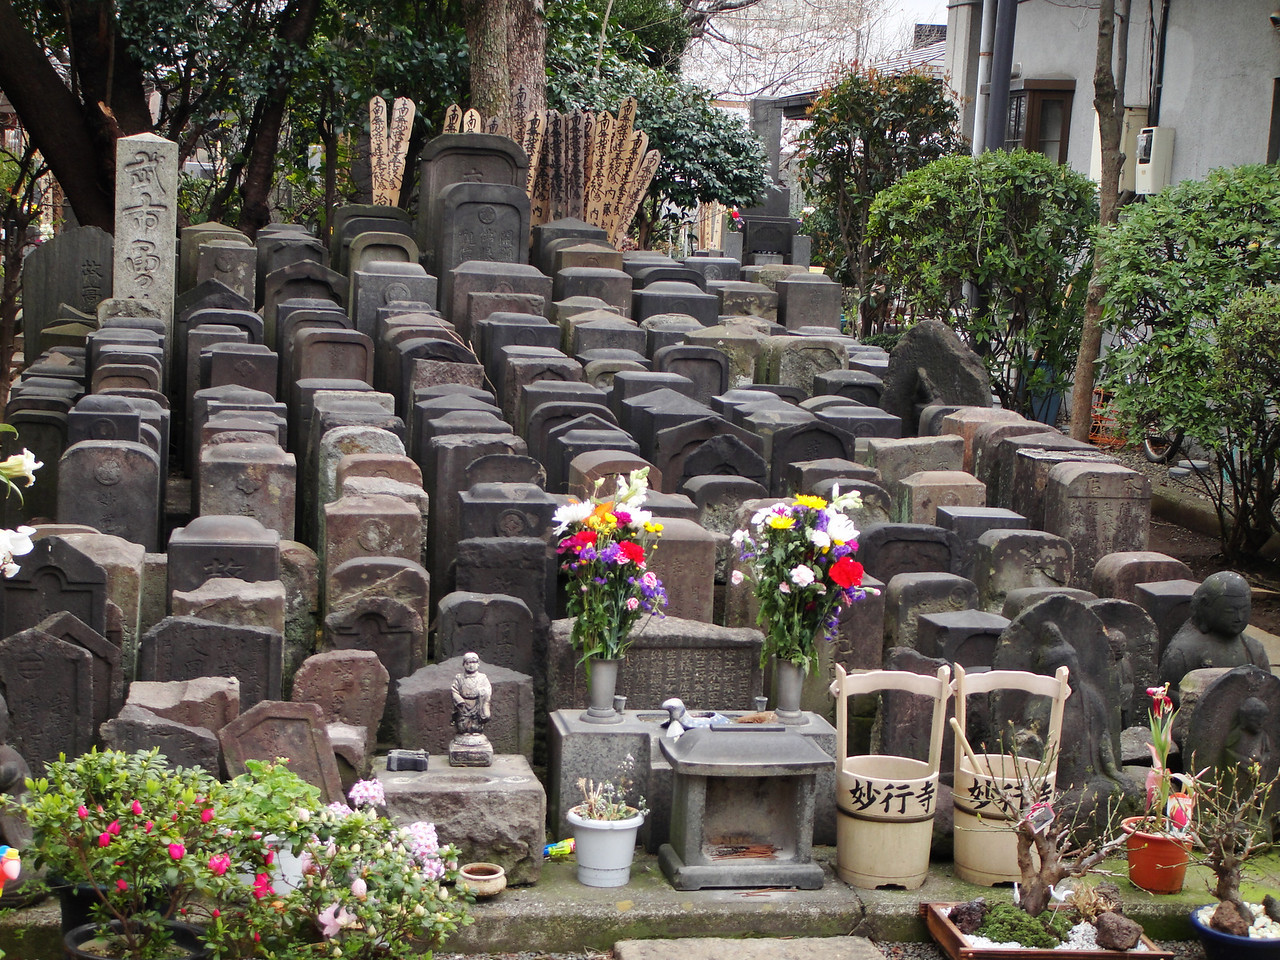 a cemetary for people who had no family.  They are prayed for daily by the monk on the premises.